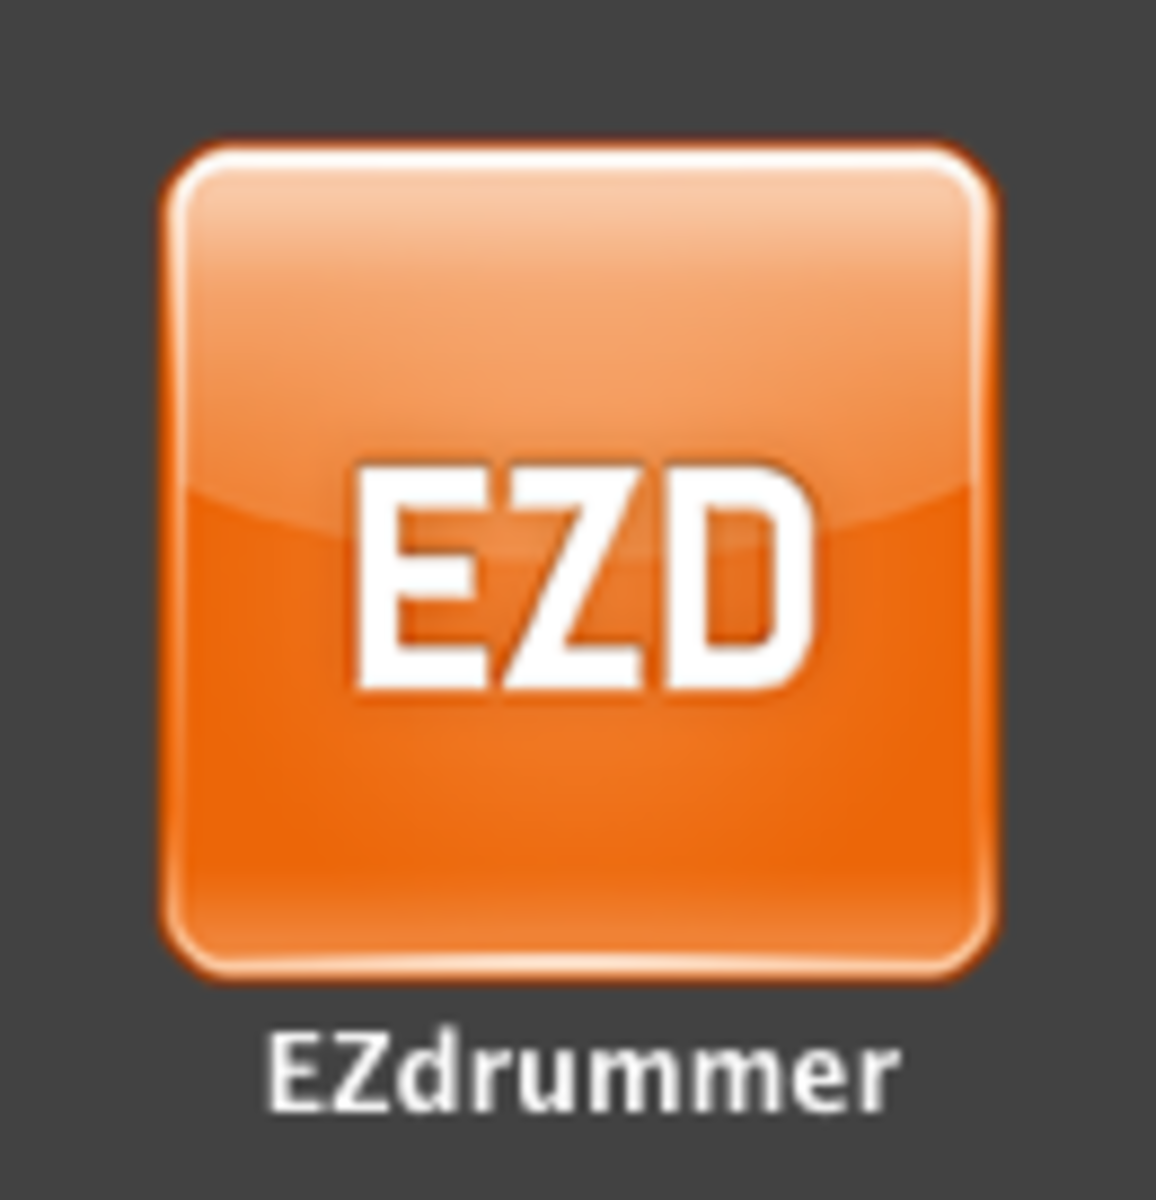 EZ Drummer 2 works great as a stand-alone program